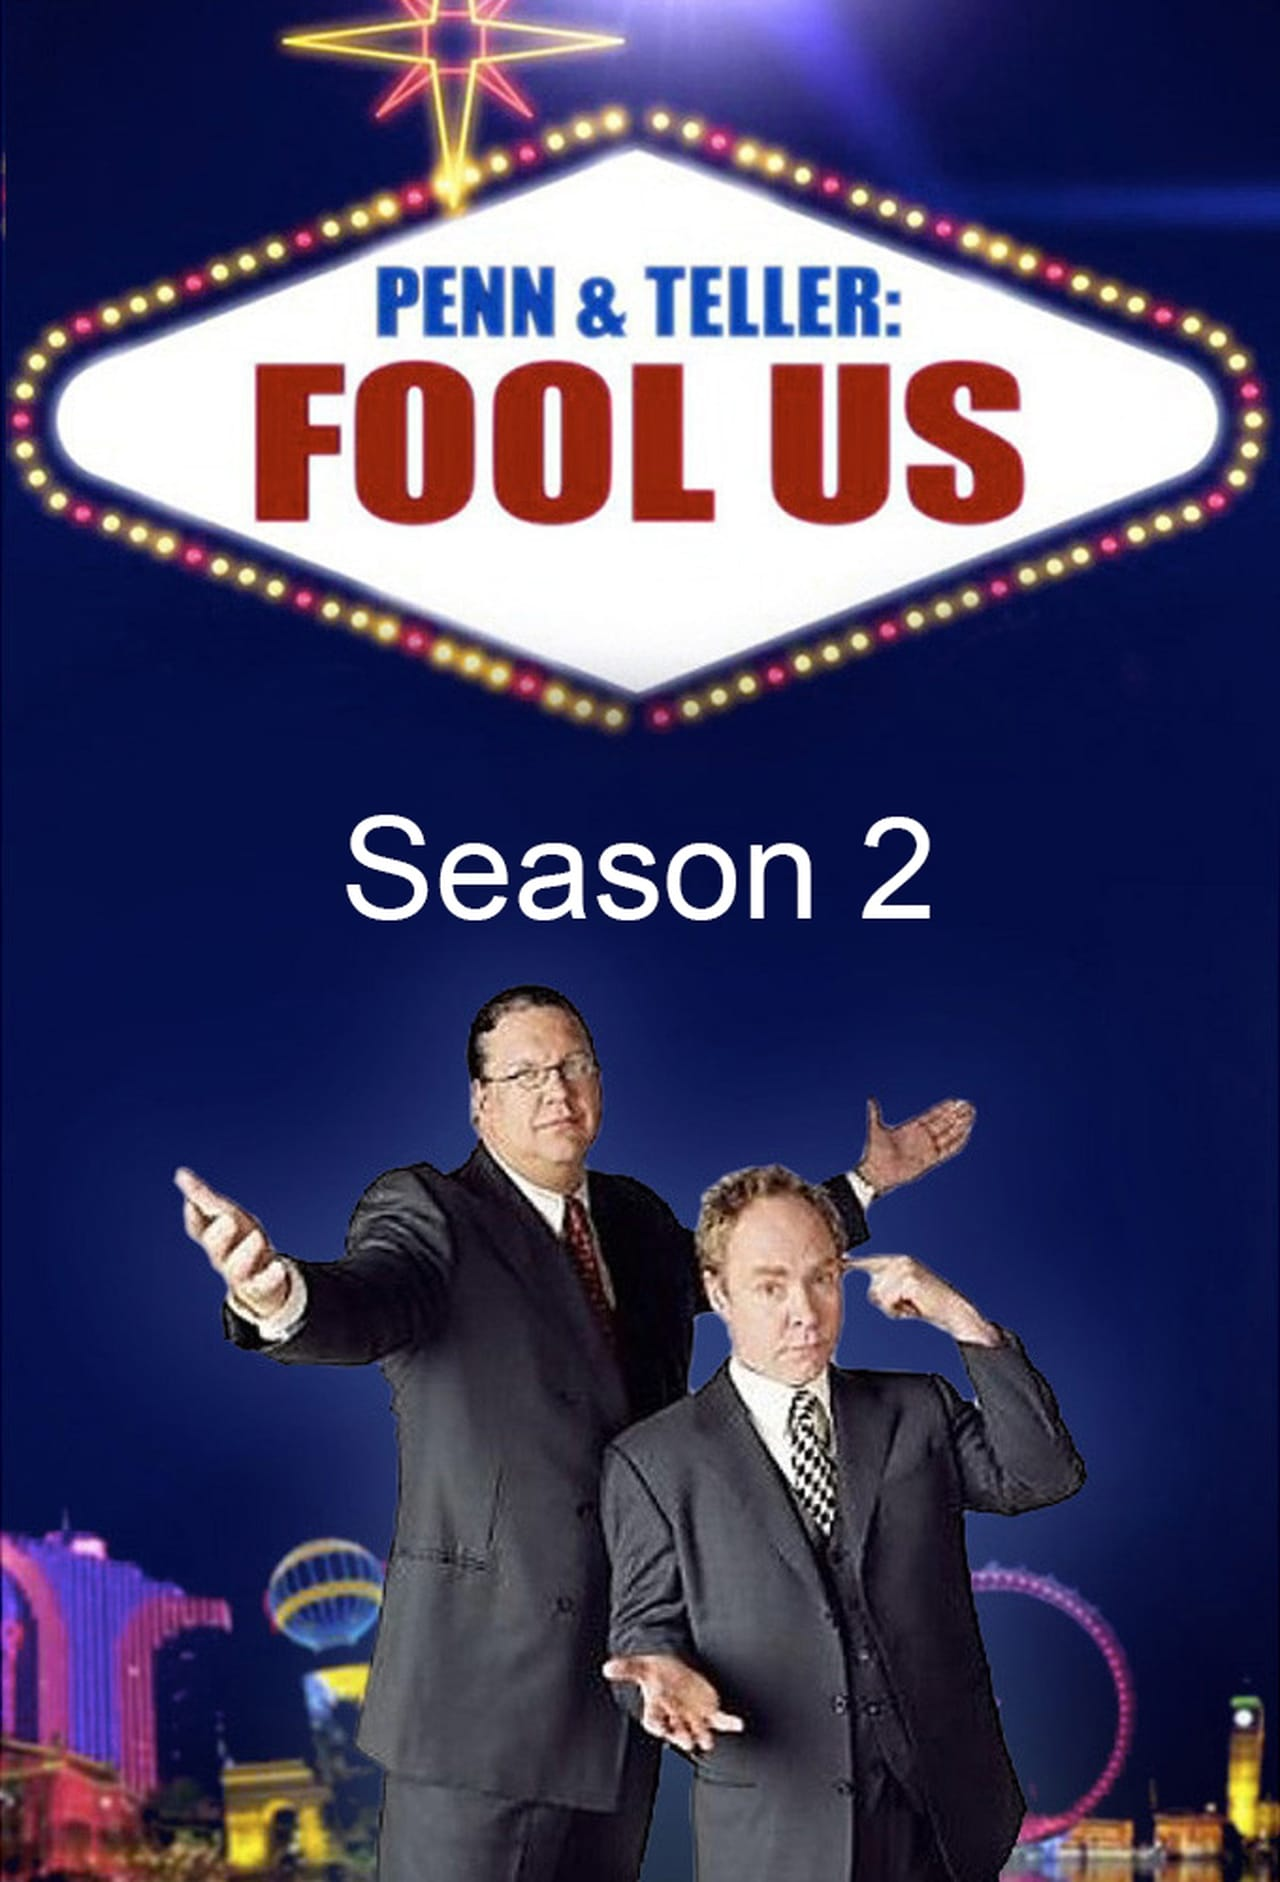 Watch Penn & Teller: Fool Us Season 2 Online